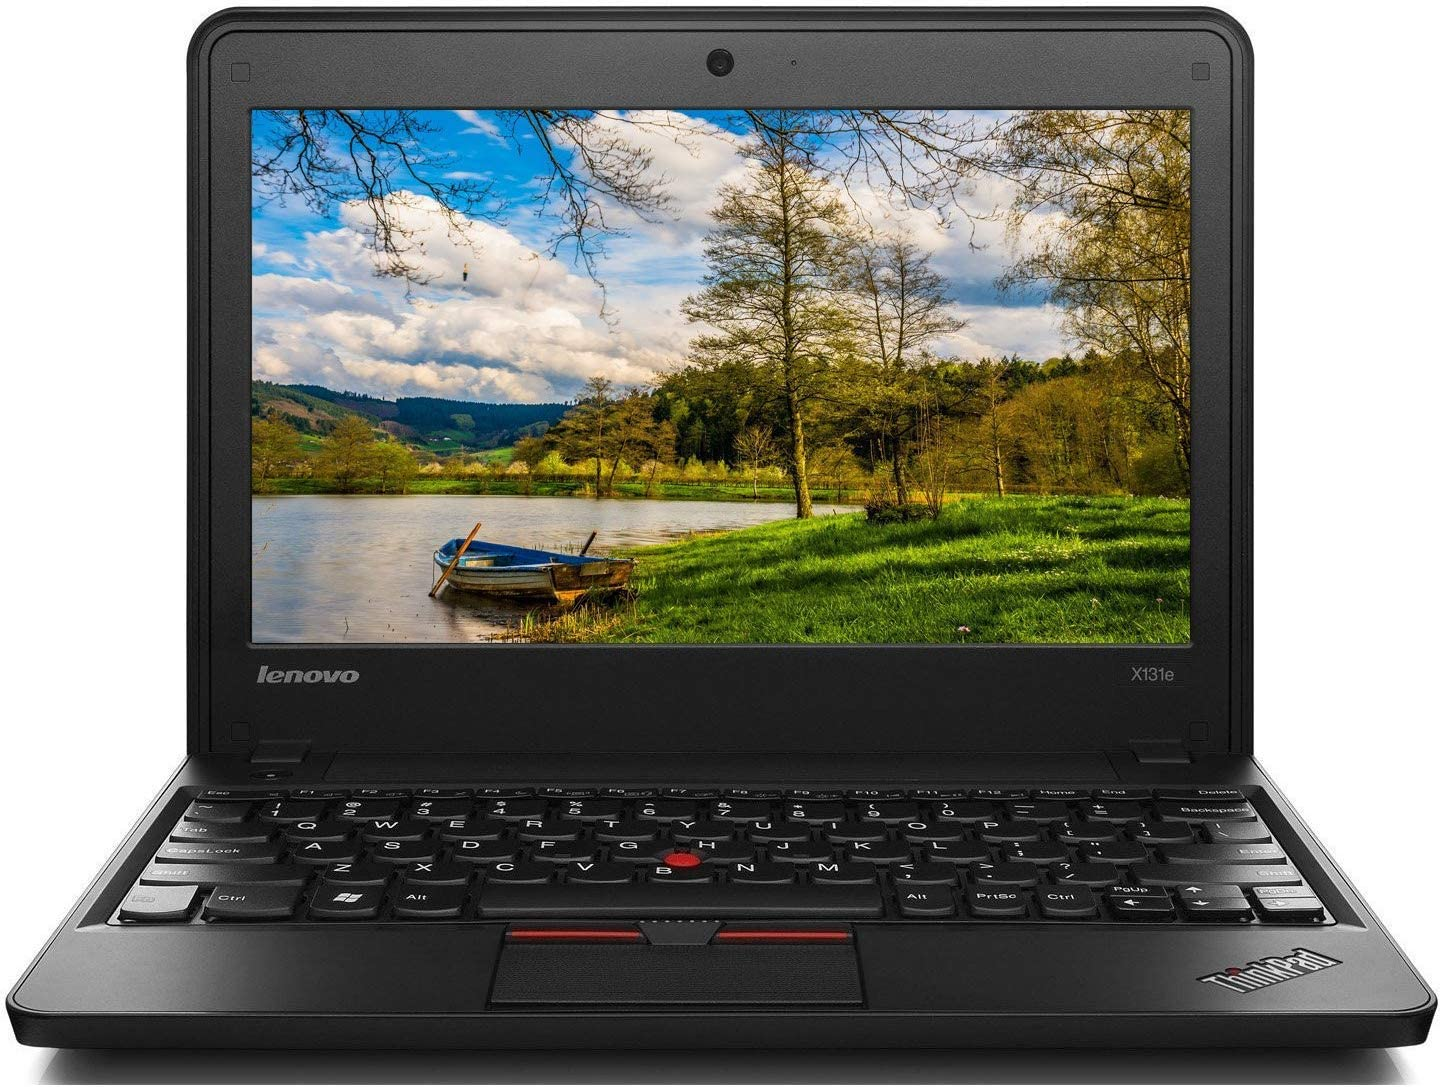 "Lenovo ThinkPad X131e Chromebook Laptop Computer, 11.6"" LED Display, Intel Dual-Core Processor, 4GB RAM, 16GB Solid State Drive, 8GB USB Flash Drive, Chrome OS, WiFi (Renewed)"